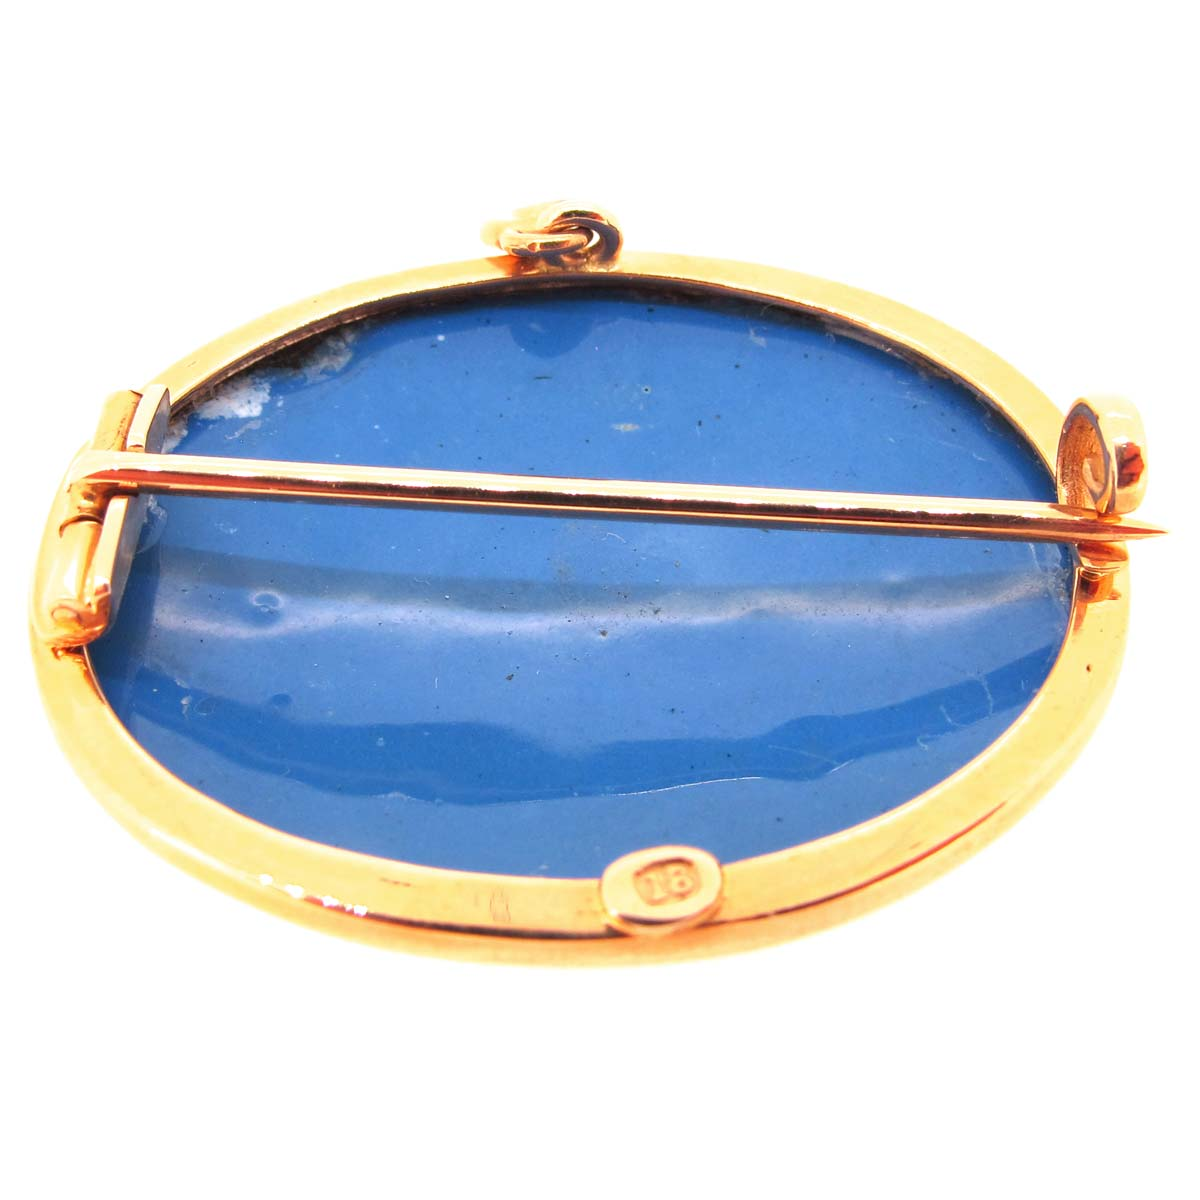 Antique gold & swiss enamel brooch